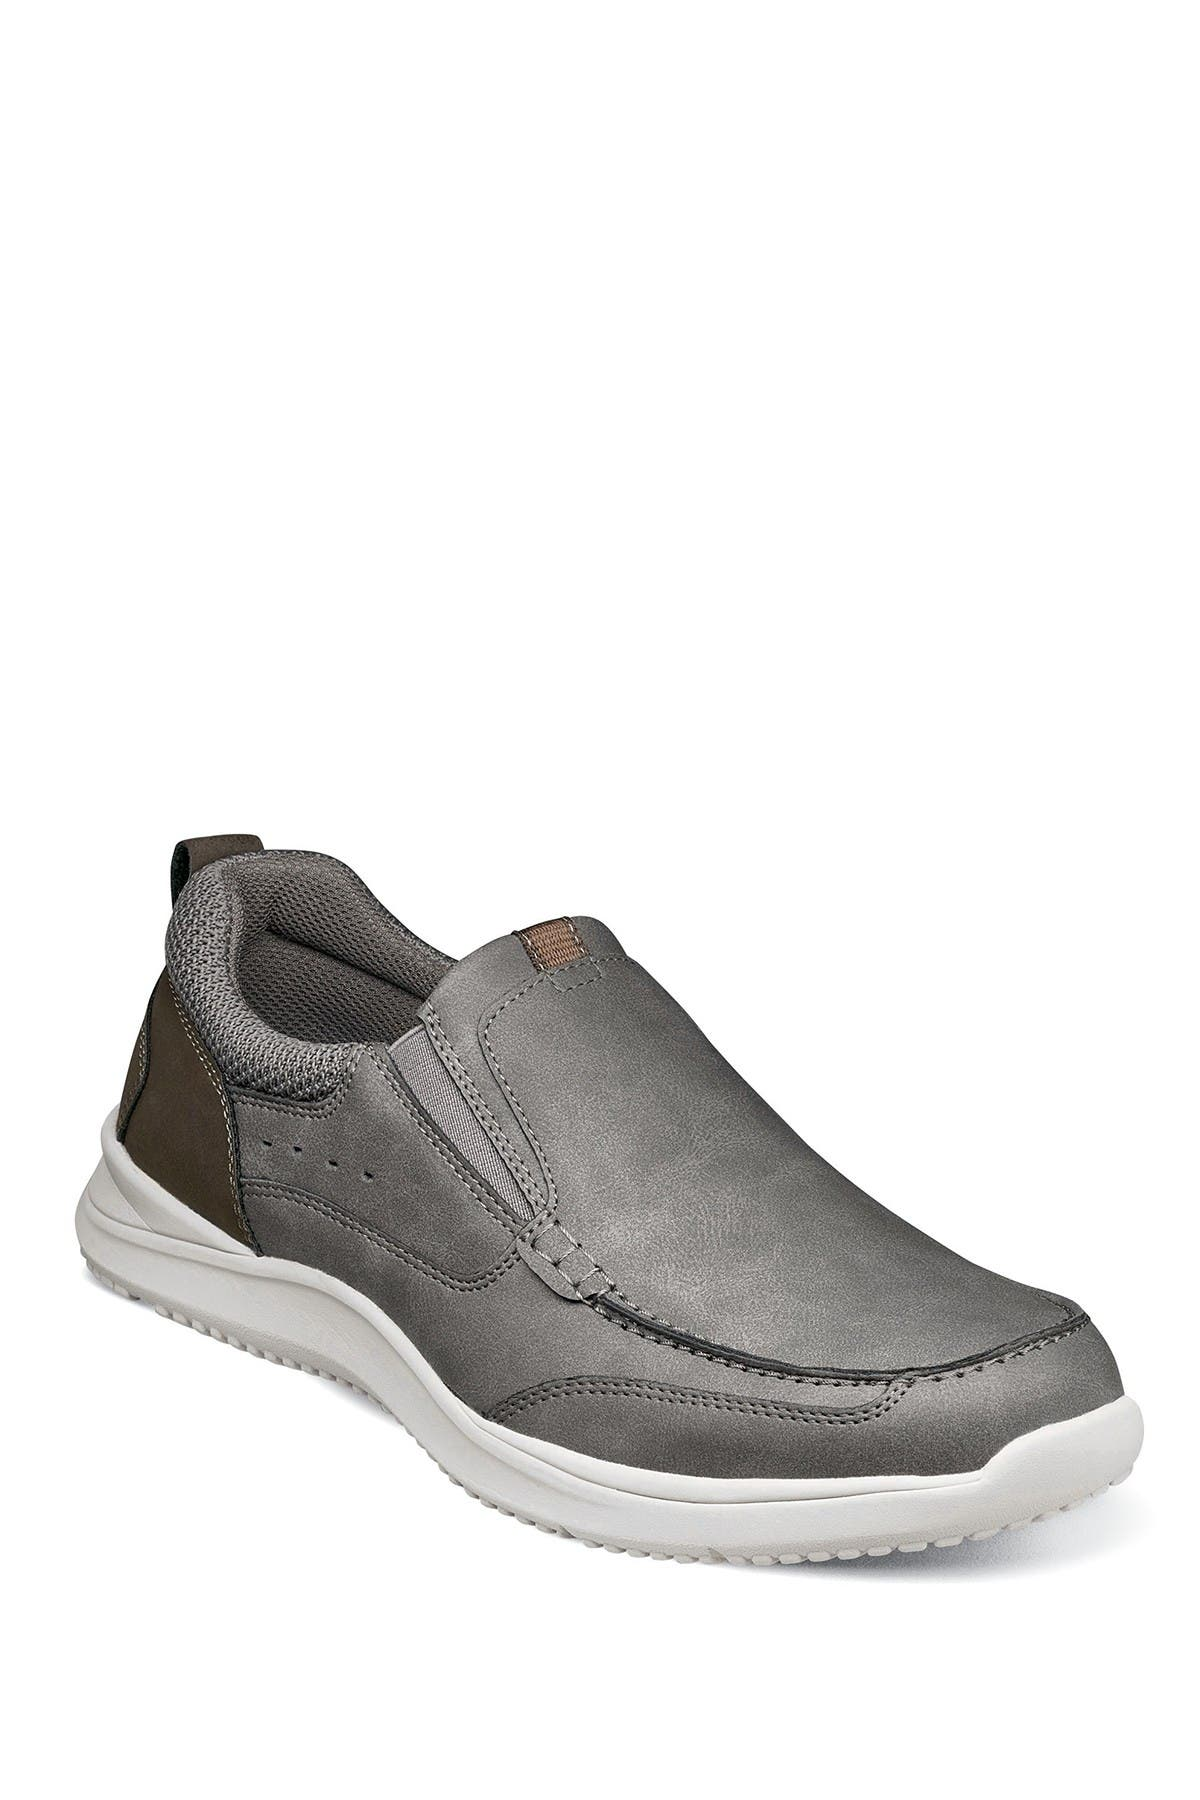 Image of NUNN BUSH Conway Moc Toe Slip-On Sneaker - Wide Width Available